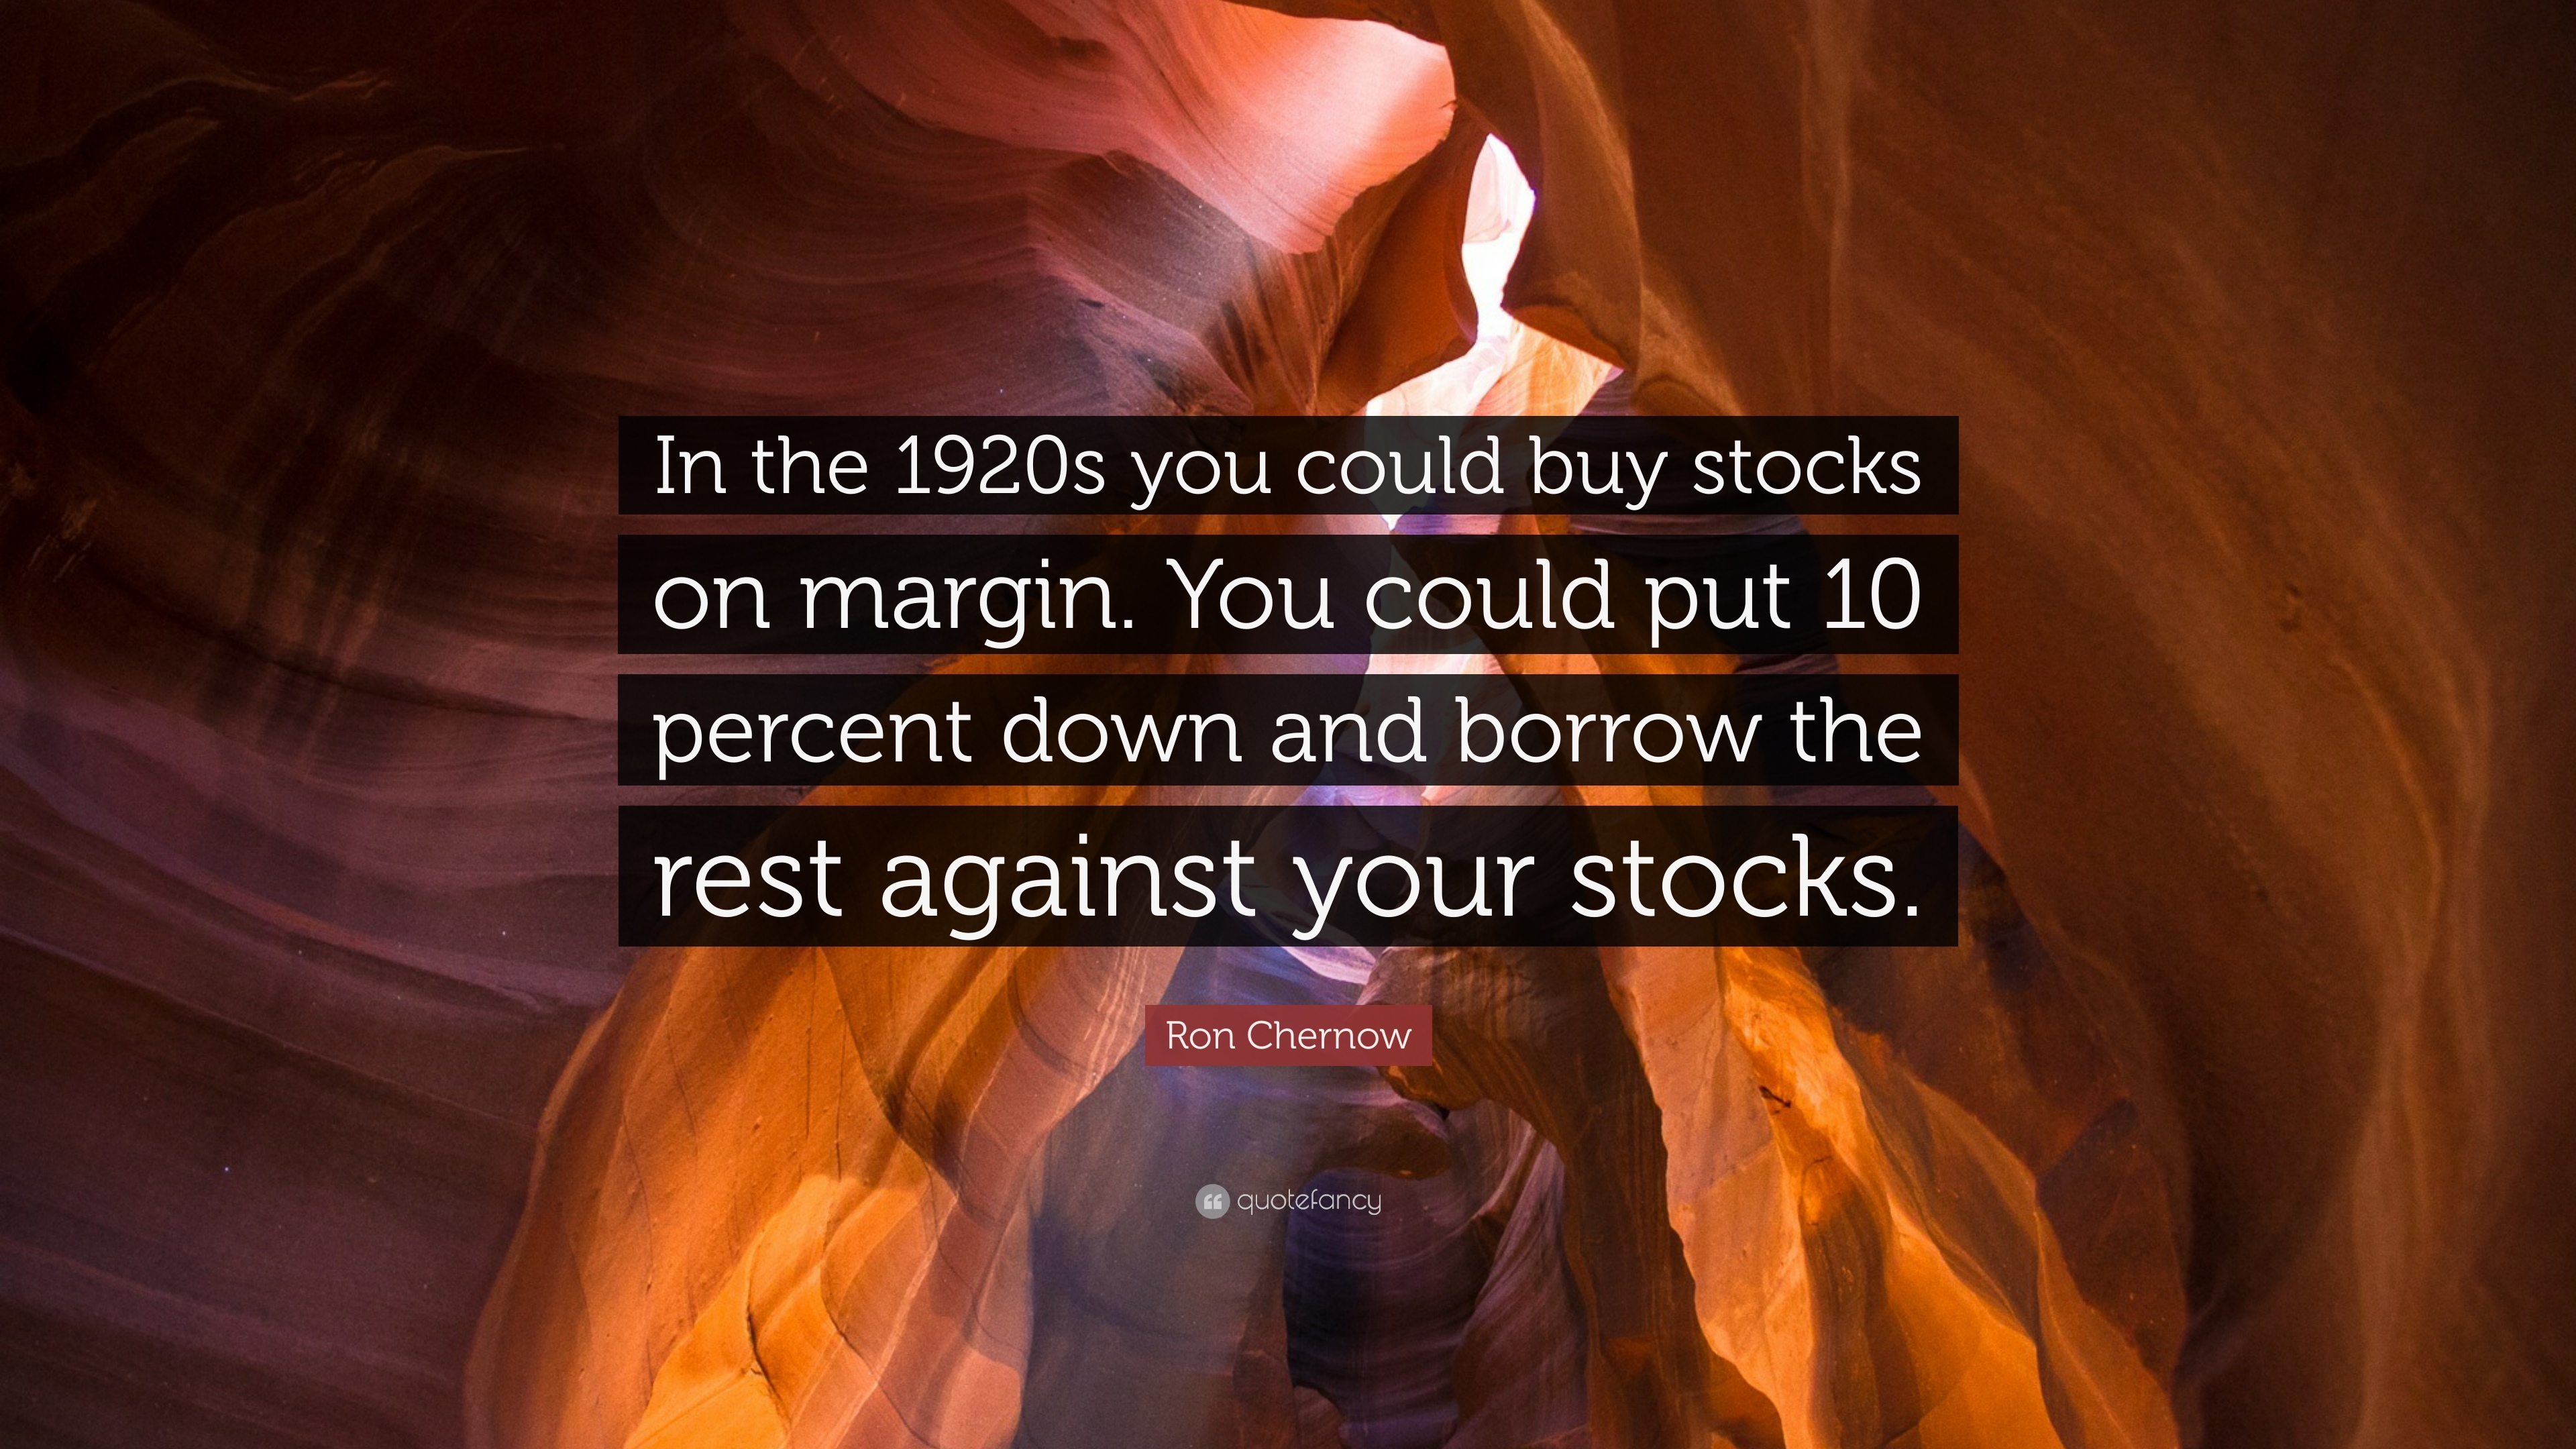 How To Buy Stocks On Margin Ron Chernow Quote In The 1920s You Could Buy